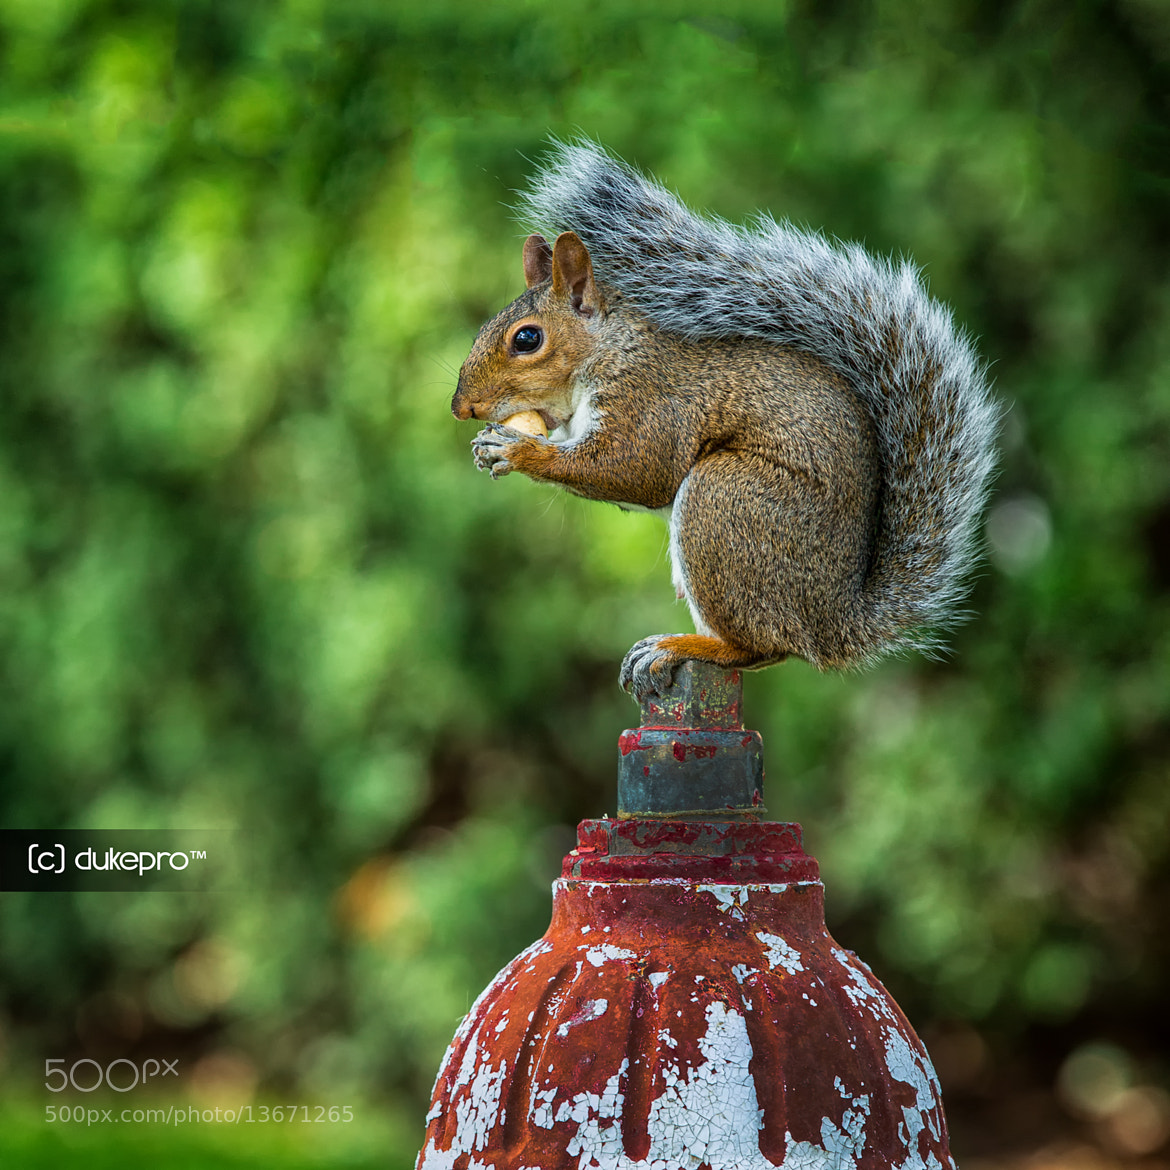 Photograph The Squirrel Is On The Fire Hydrant  by DukePro Photography on 500px